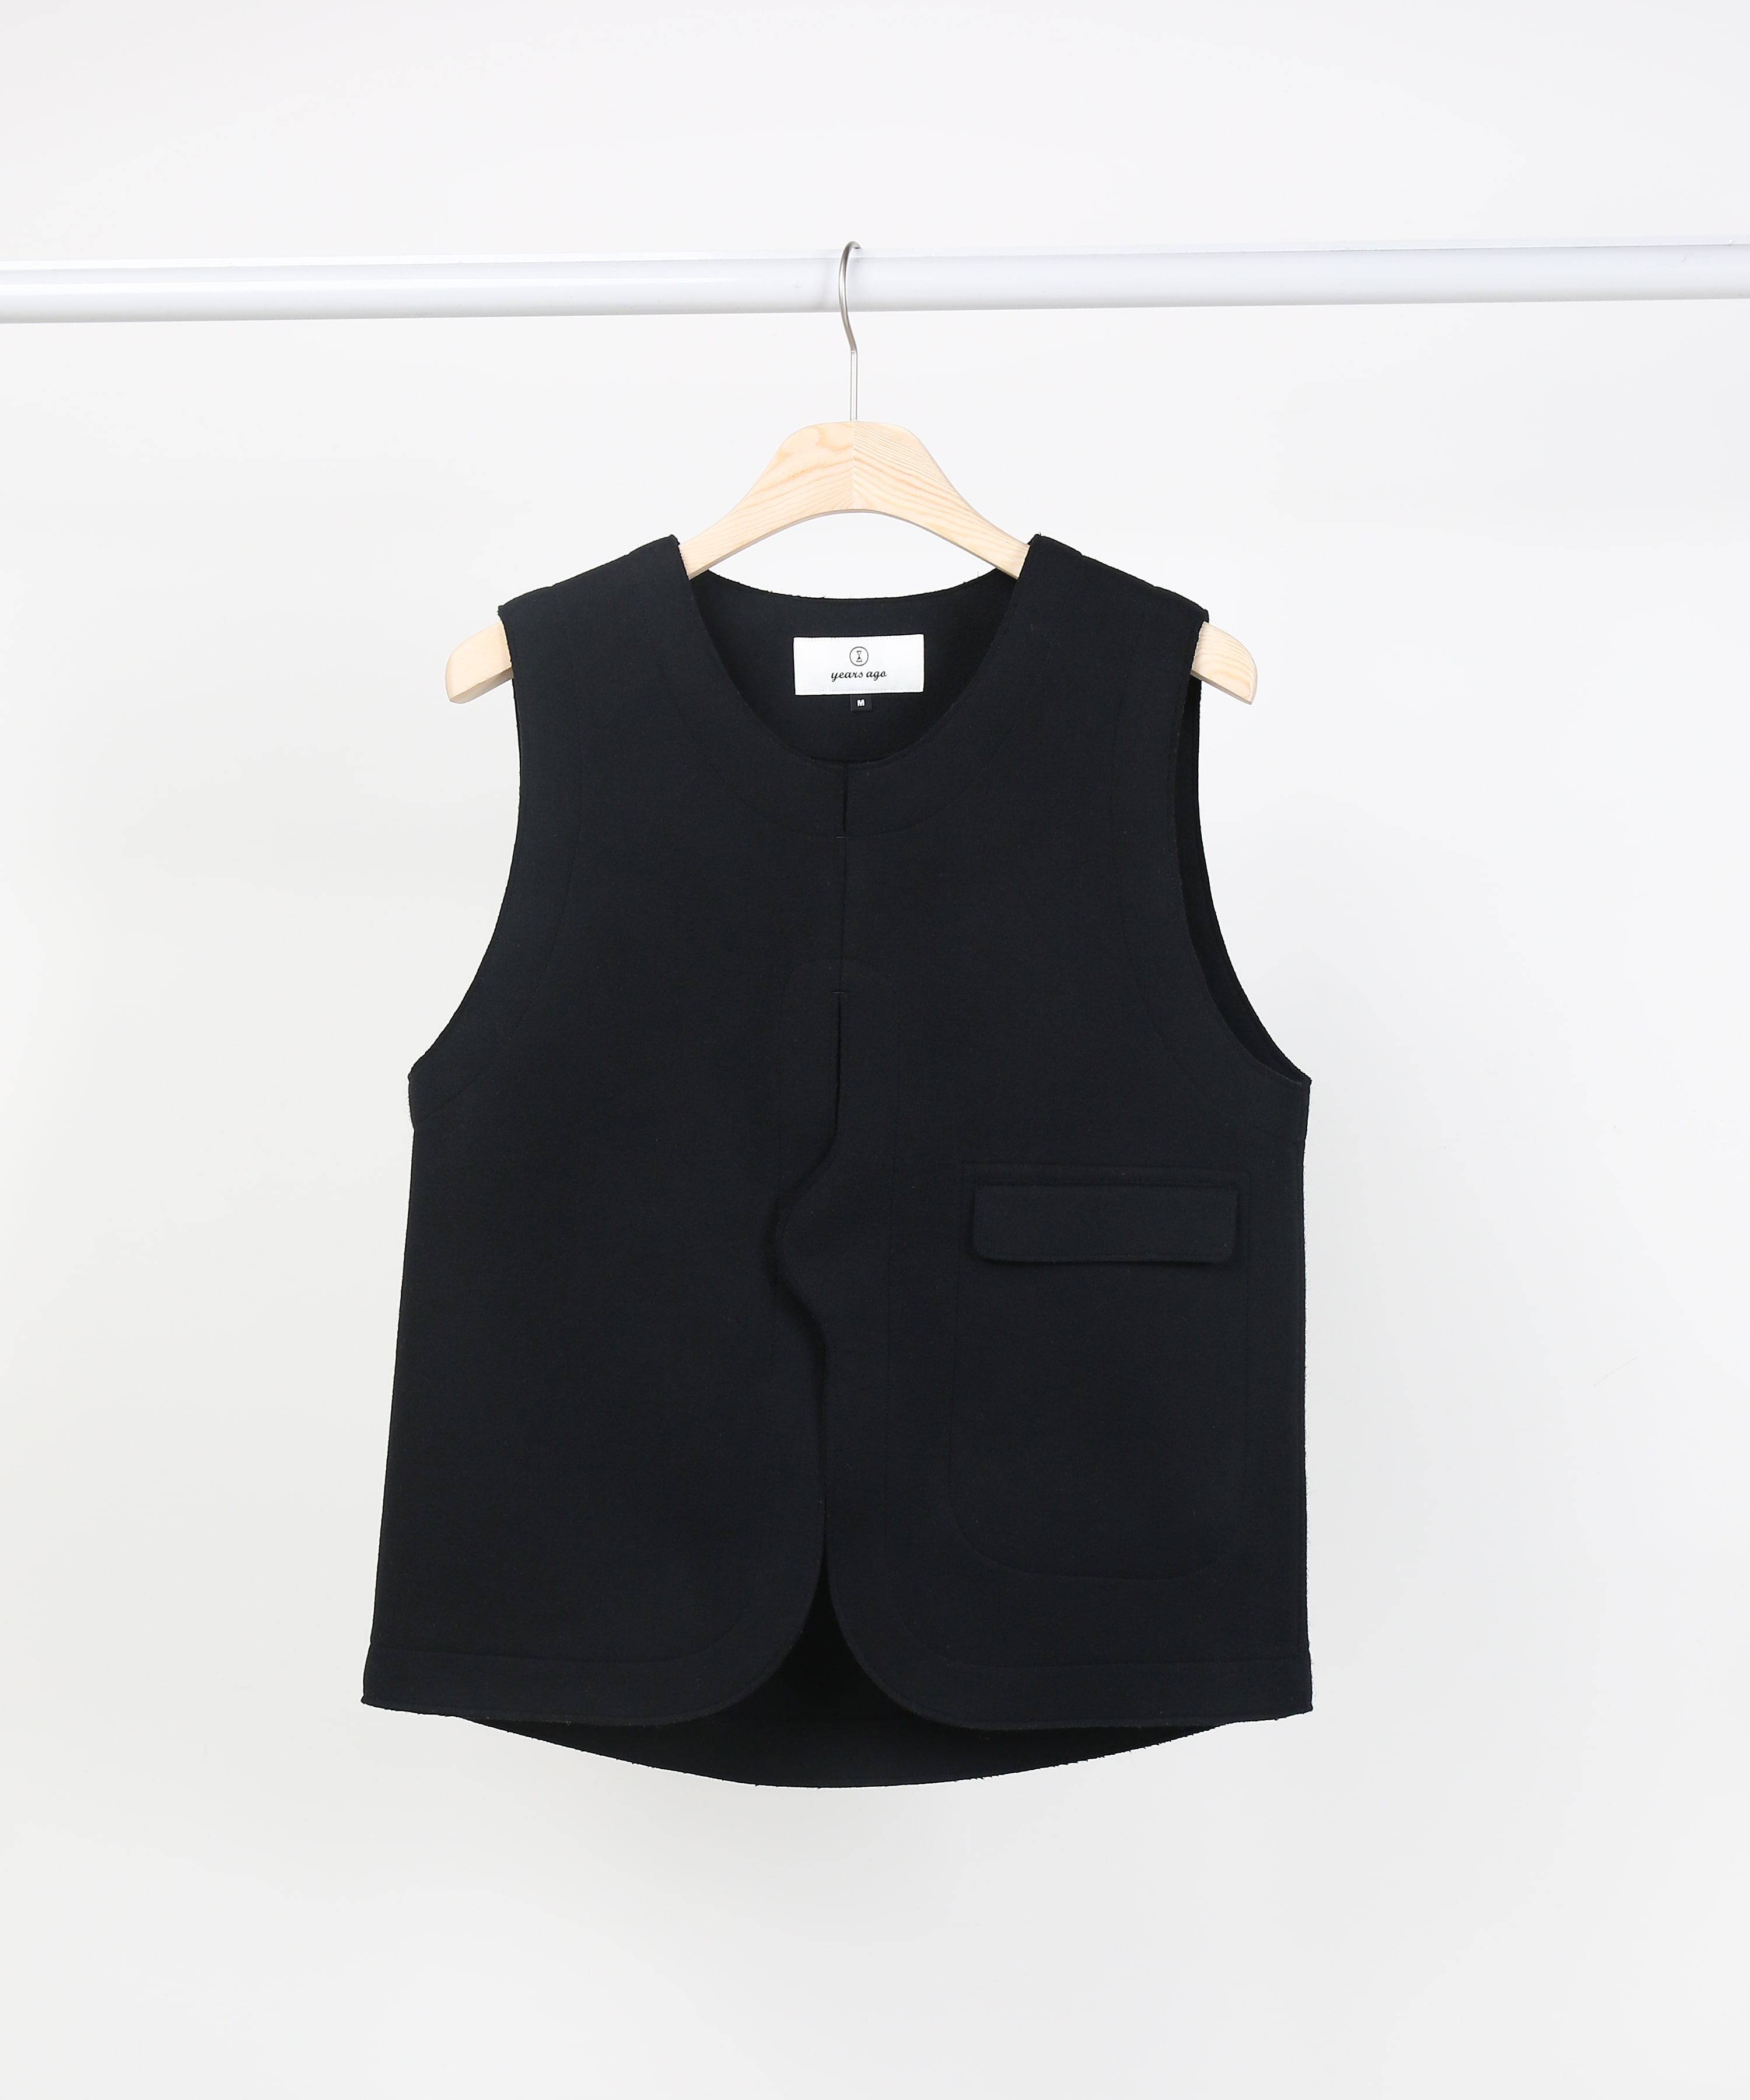 BLACK ADJUSTABLE VEST 01-2